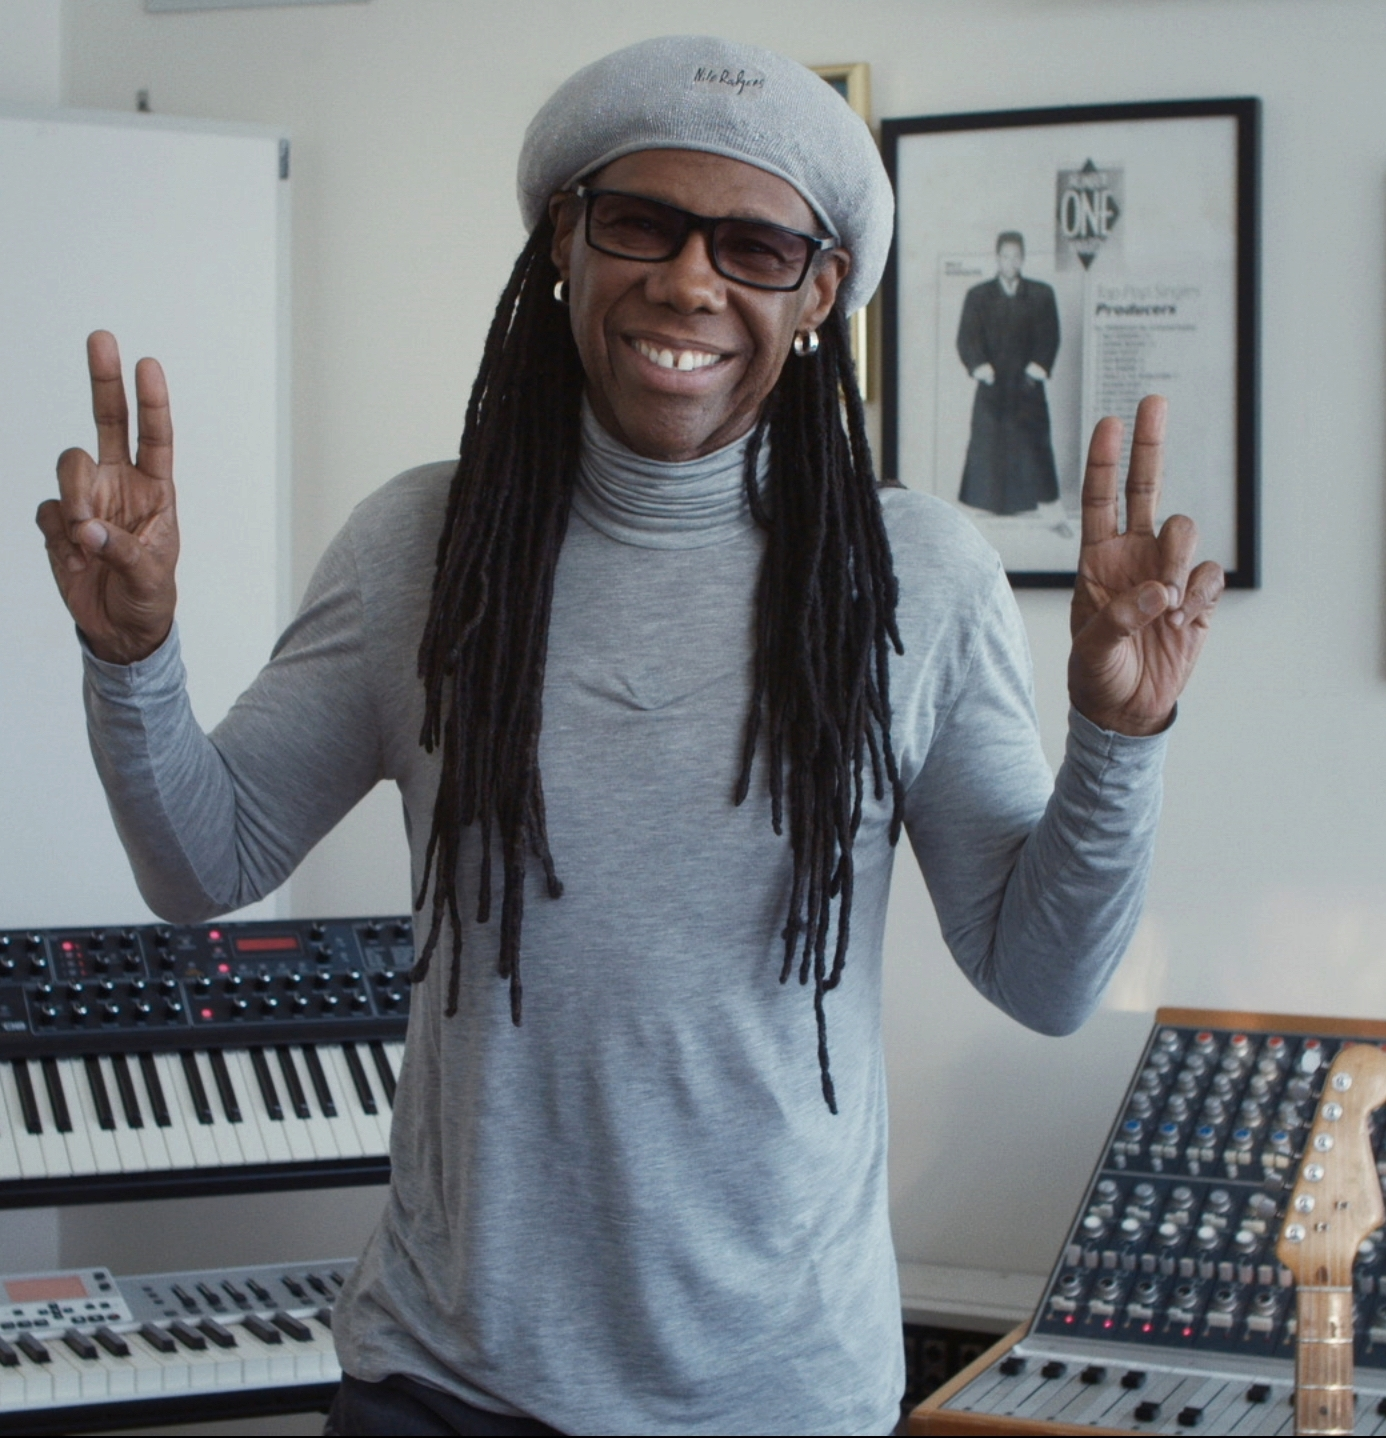 CHANNEL 4 x LAD BIBLE x PI STUDIOS - 'I was there when House was Born' is a exploratory two-part series on the birth of house music. Commissioned by UK broadcaster Channel 4 and activated in partnership with digital publisher Lad Bible.